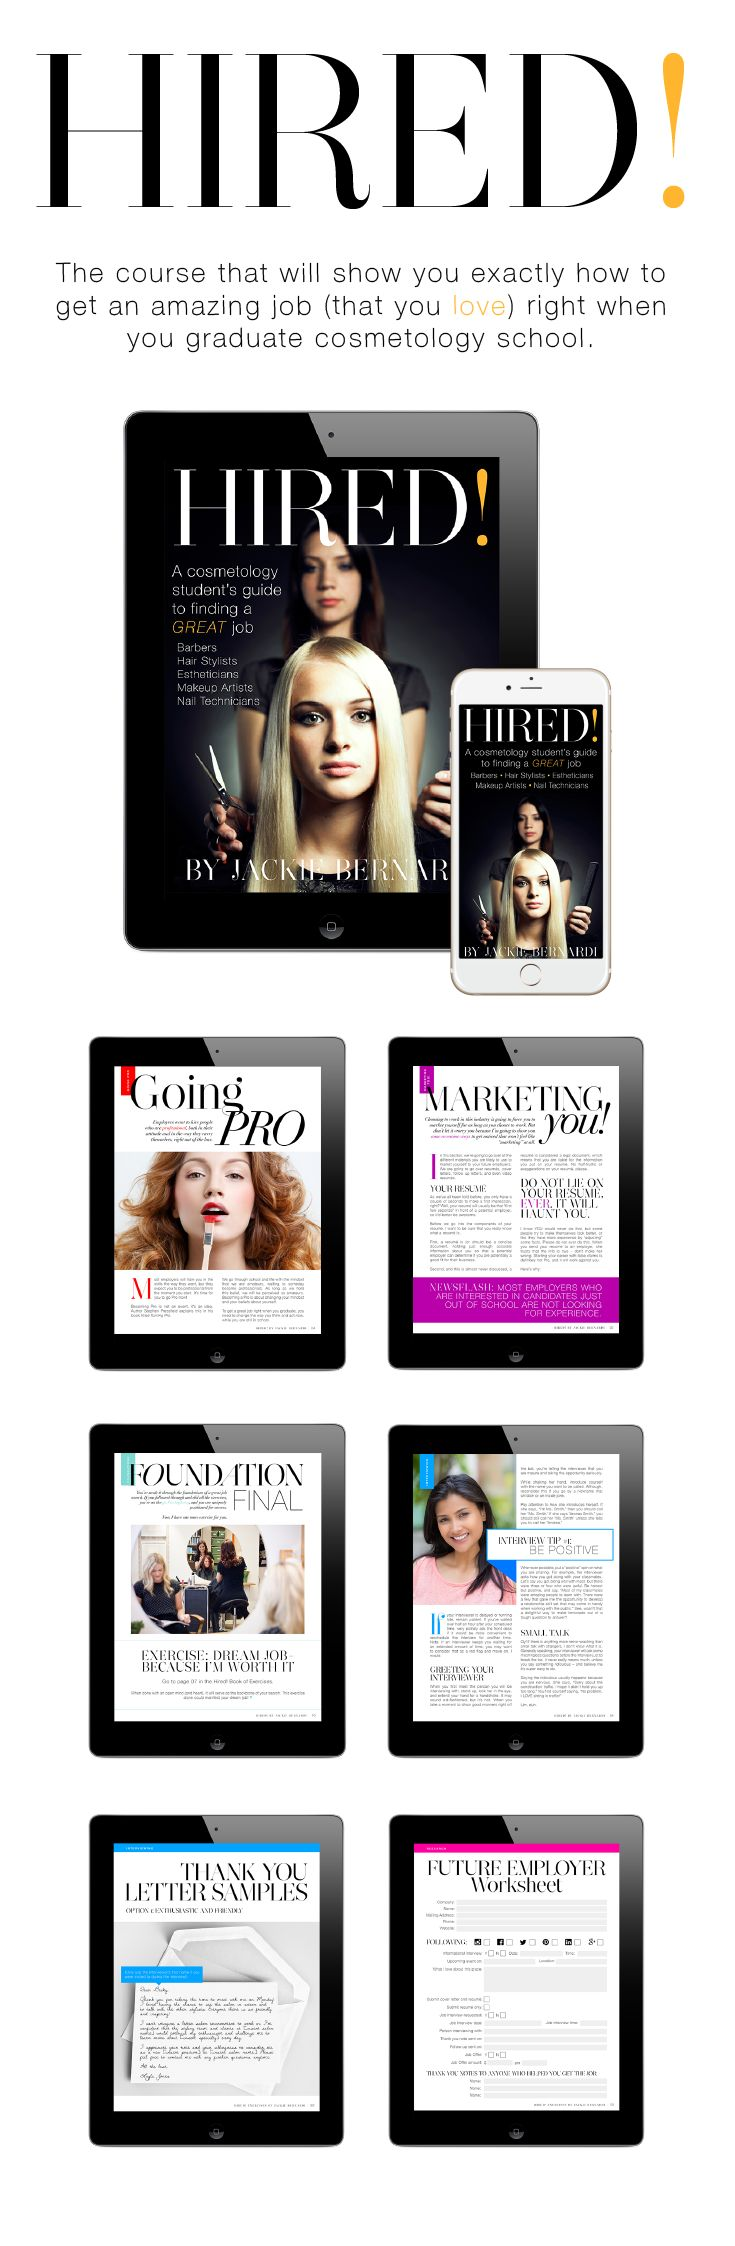 Get HIRED! right out of Cosmetology school. Learn exactly what you need to do to land an amazing job right when you graduate. Although I wrote it specifically for Hair Stylists, Barbers, Estheticians, Makeup Artists and Nail Techs, the content is invaluable for ANY recent (or soon to be) grad. Be sure to click on the pin to watch a free video that goes over the REAL reason your first job is so important. // xo Jackie